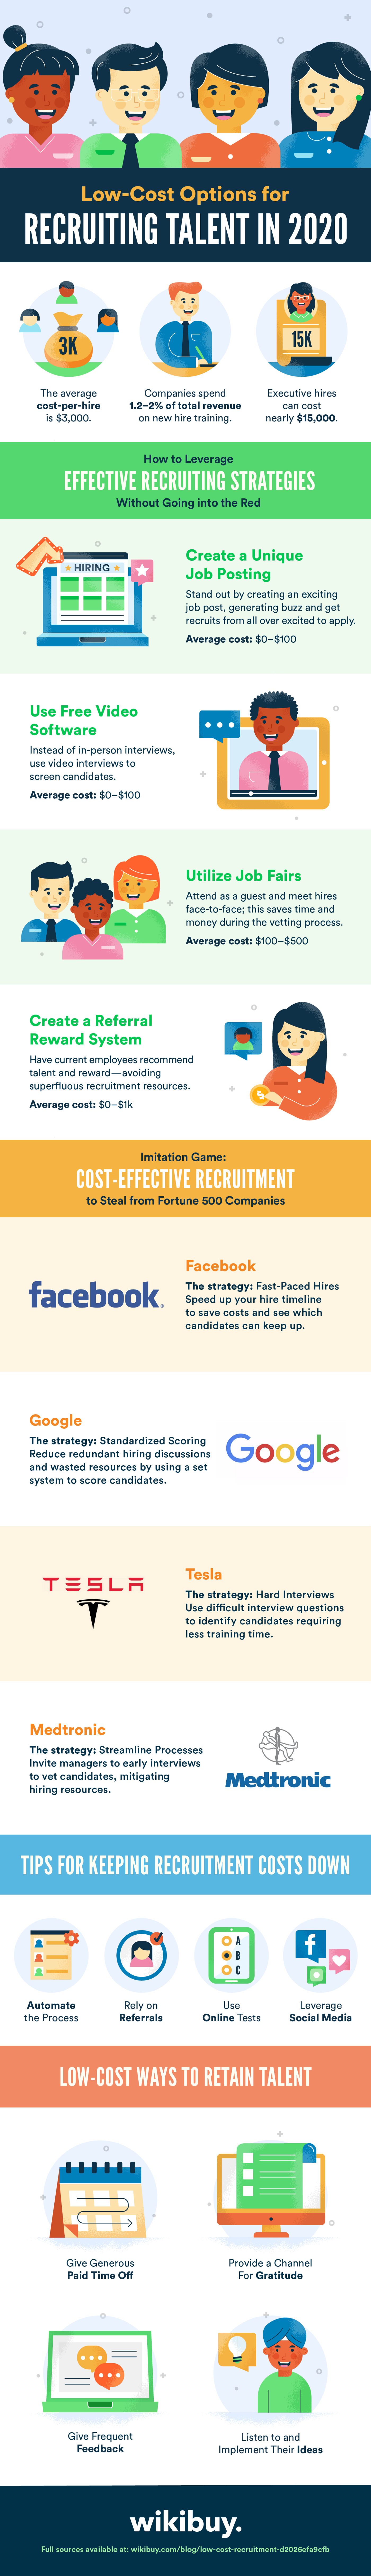 On a budget recruitment ideas infographic